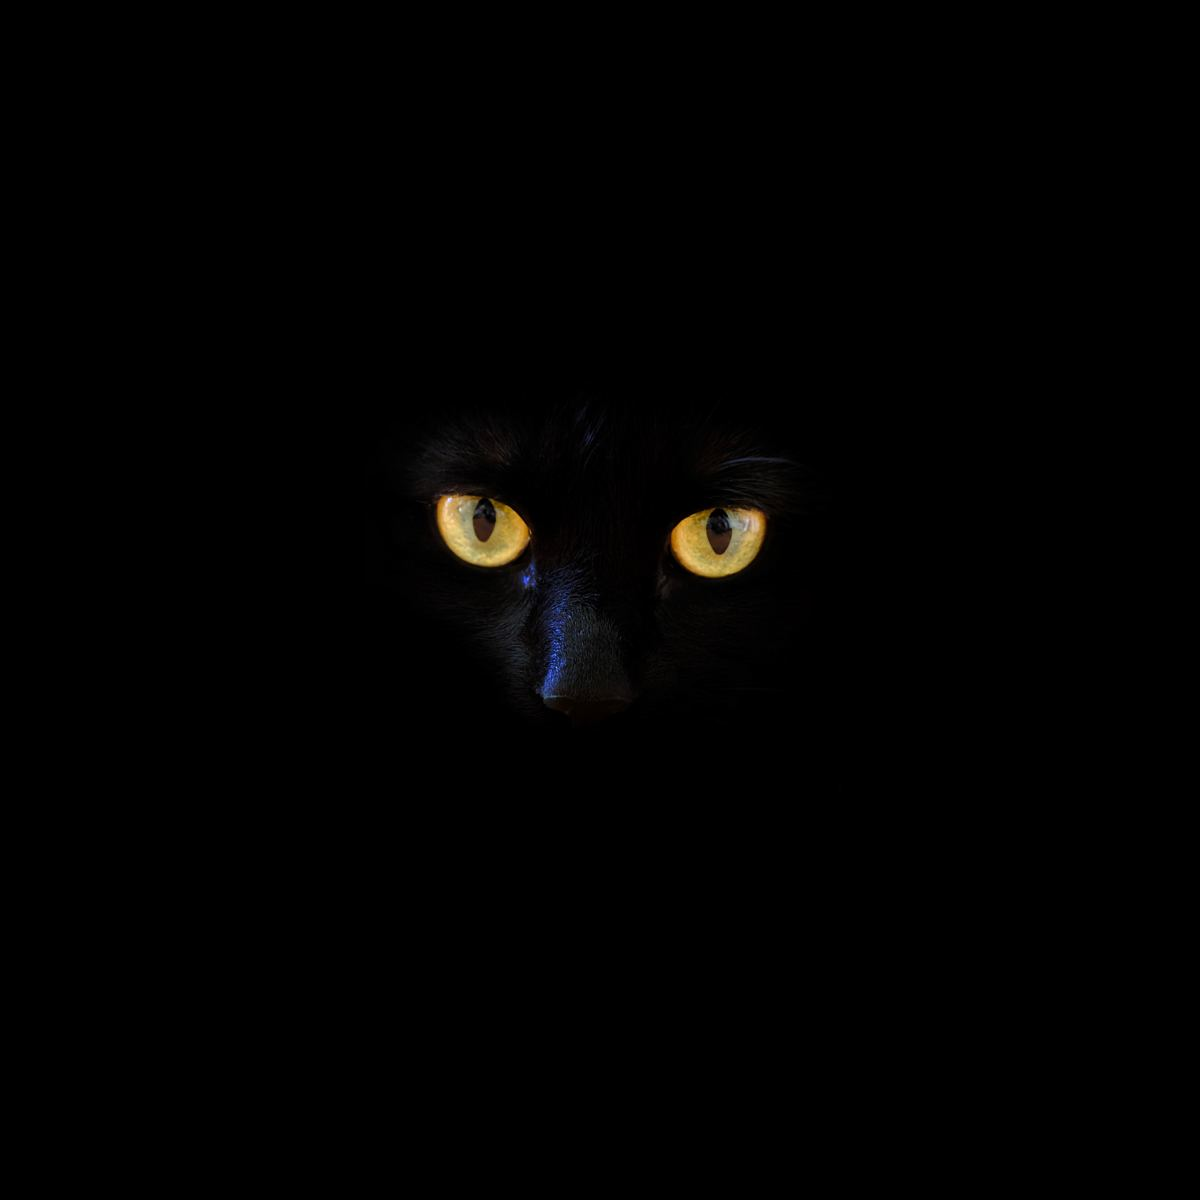 If you own a black cat, you'll probably only be able to see their glowing eyes in the dark.